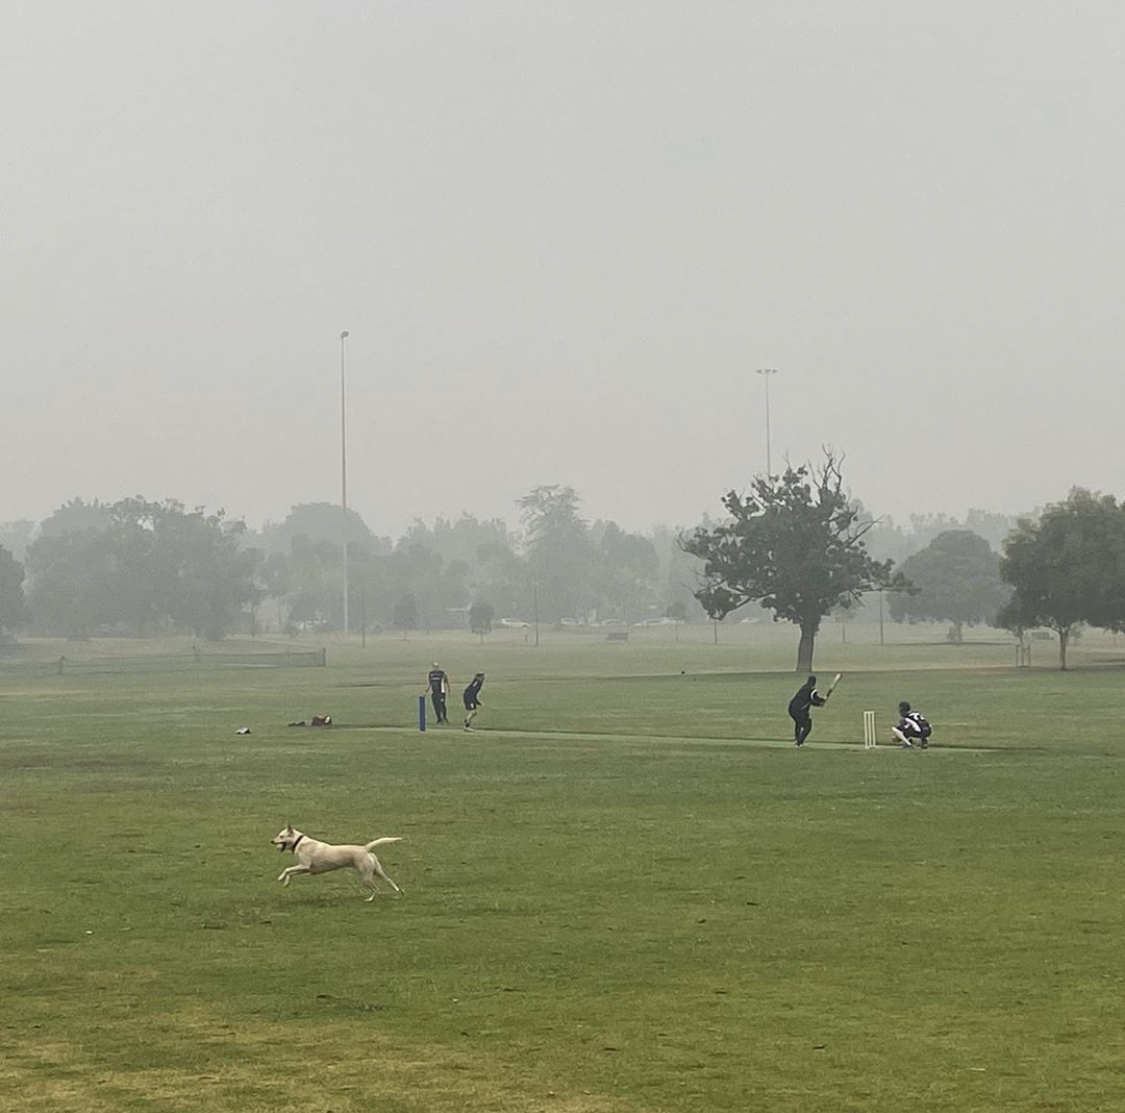 Playing Cricket in the smoke